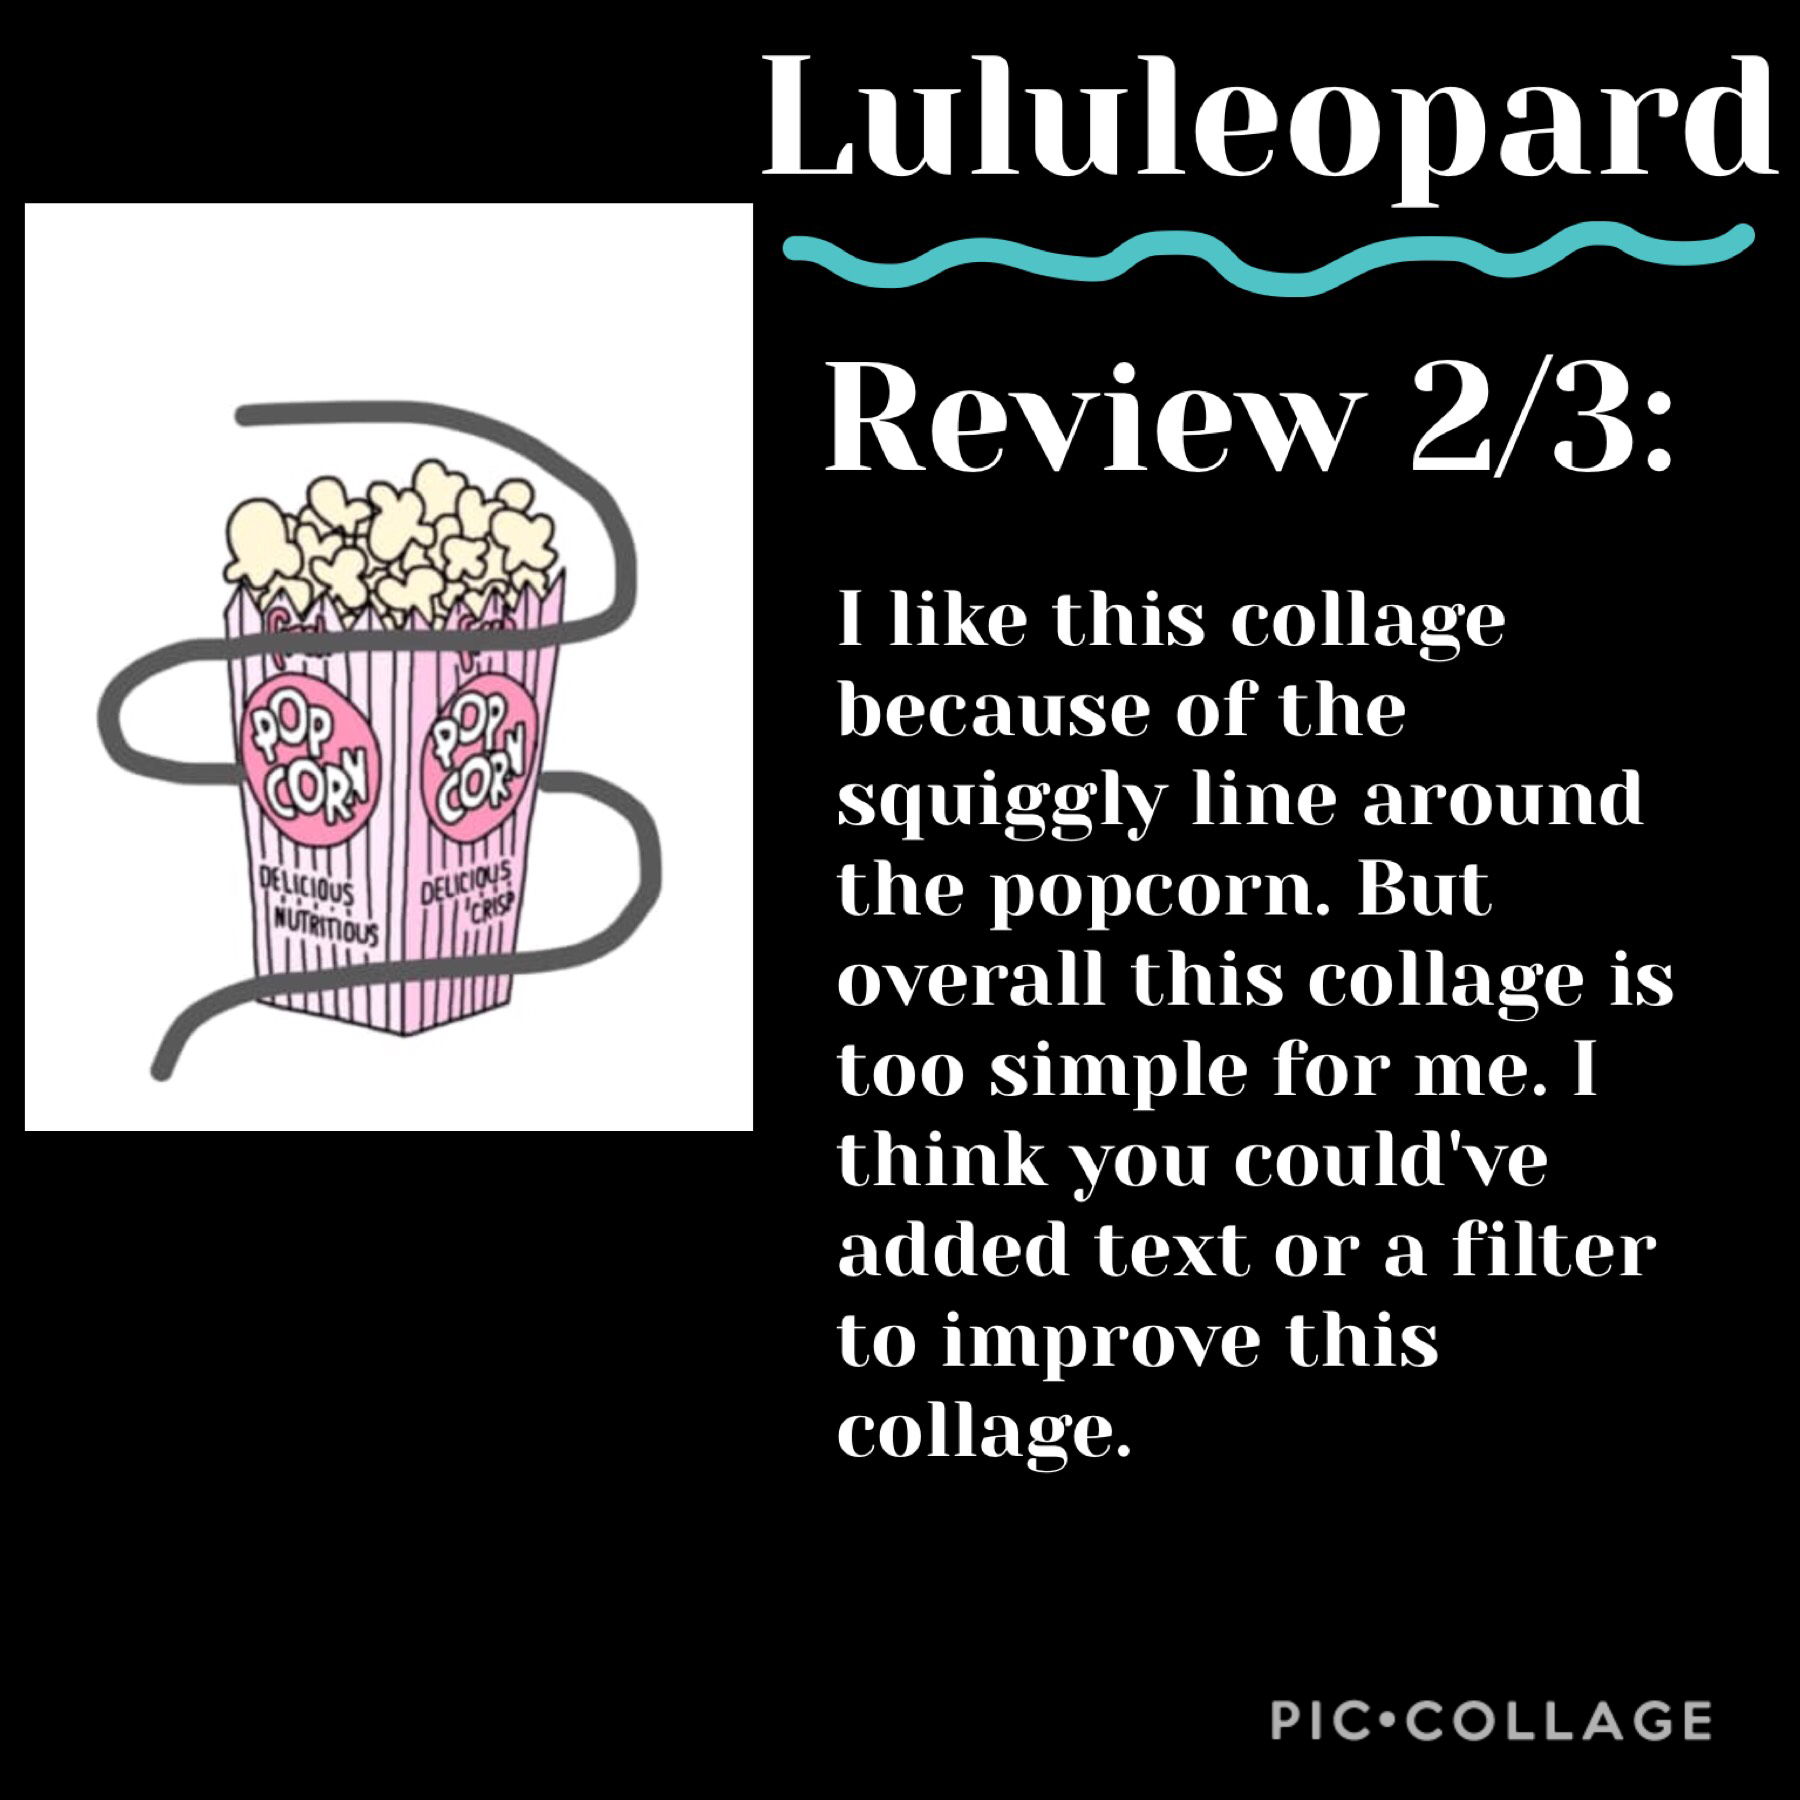 👋🏻TAP👋🏻 Next Review for Lululeopard!!! Rating 6.5/10 Thank You for requesting a review!!! Go follow and spam her page @Lululeopard  🐆⭐️🐆⭐️🐆⭐️